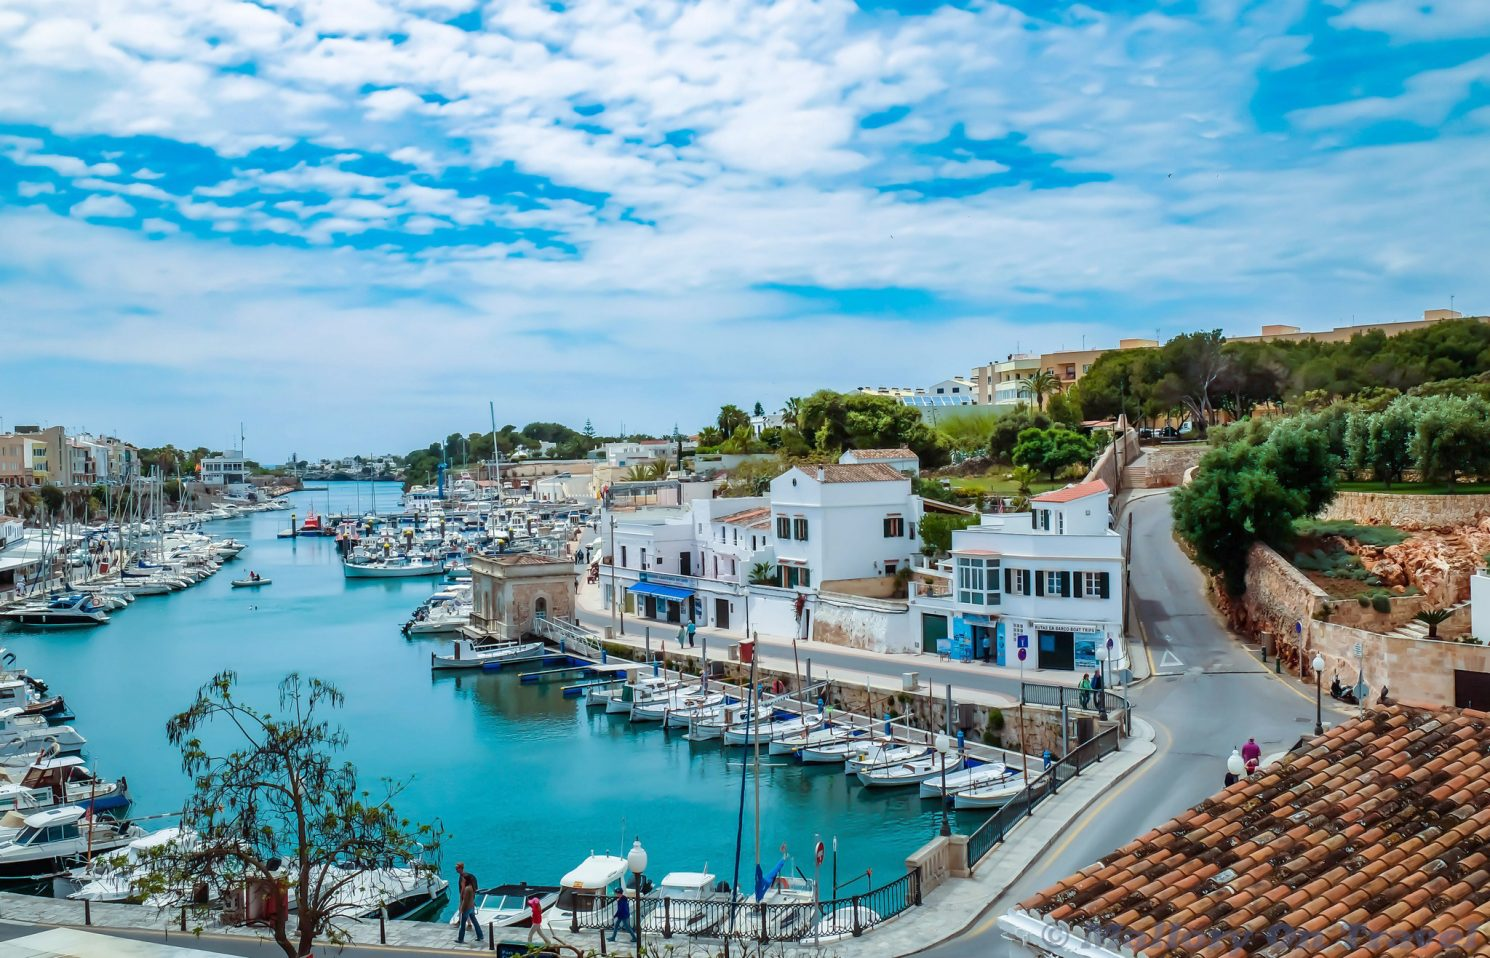 The harbour of Ciutadella second city on the Balearic island of Menorca, Spain on Mallory on Travel adventure travel, photography, travel Iain Mallory_Menorca3051